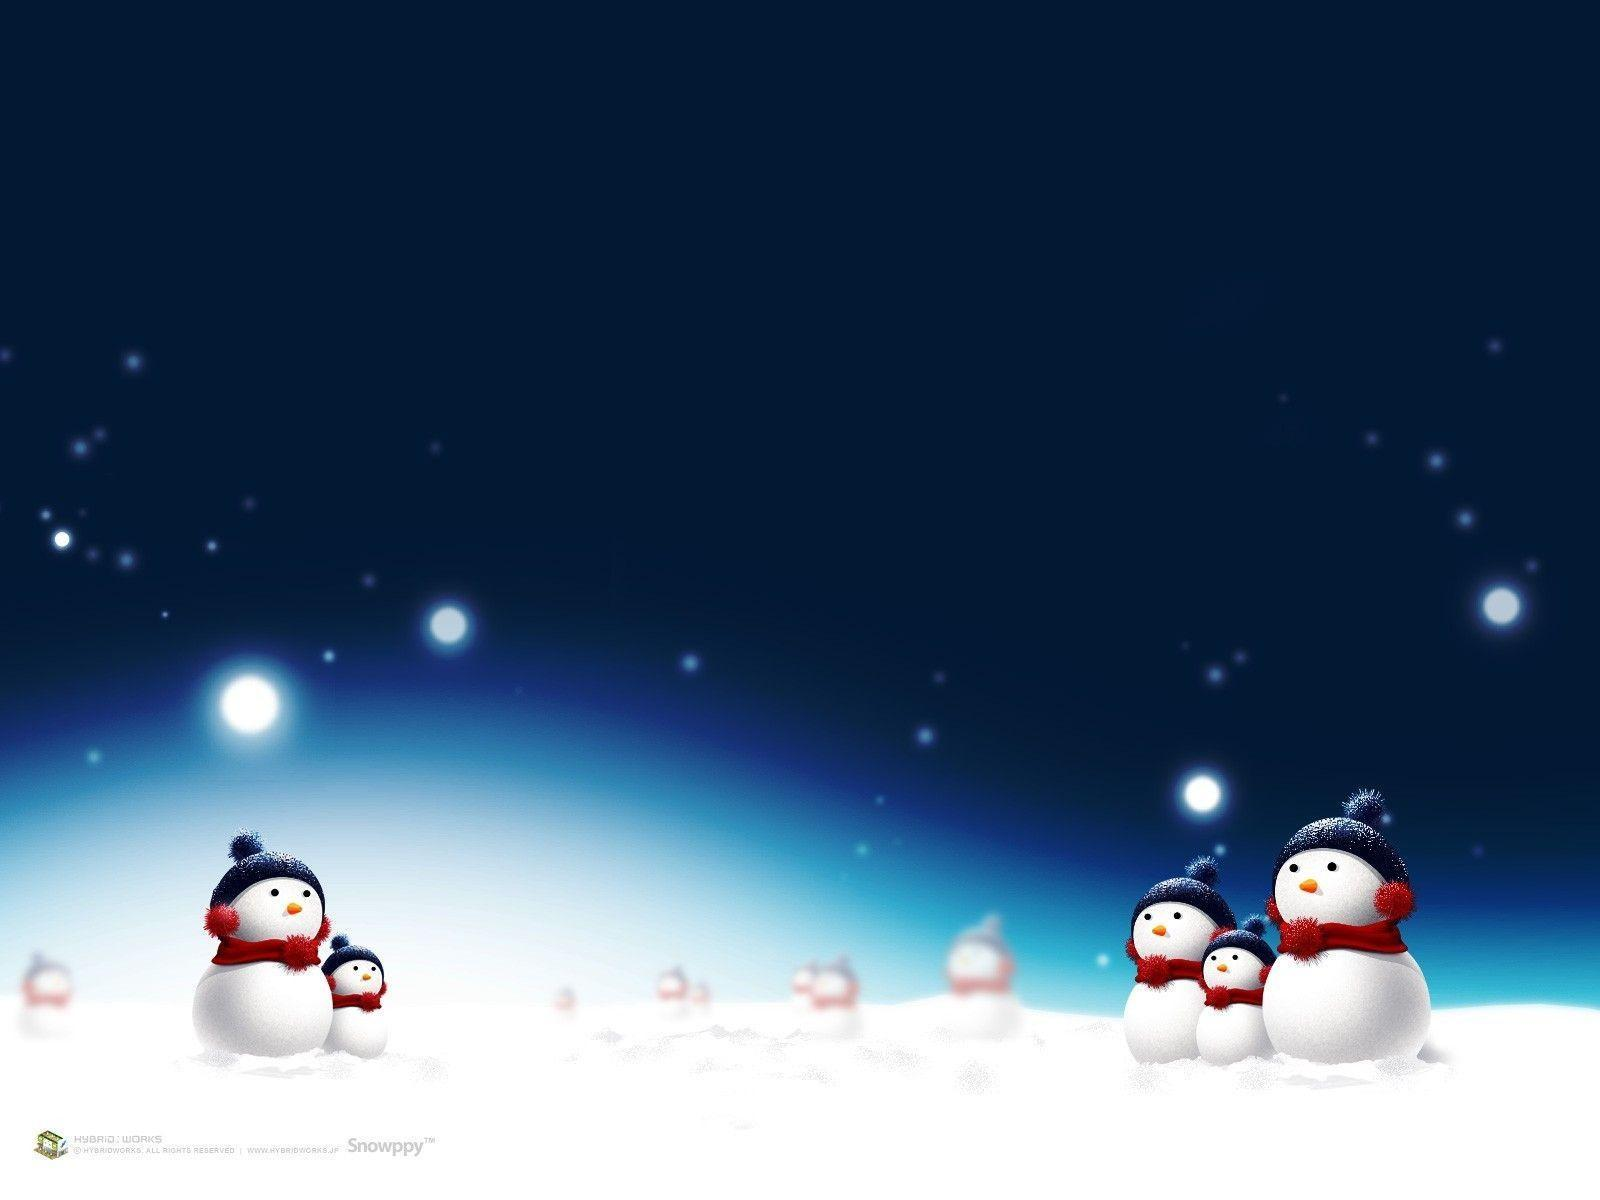 Wallpapers For > Winter Snow Christmas Backgrounds